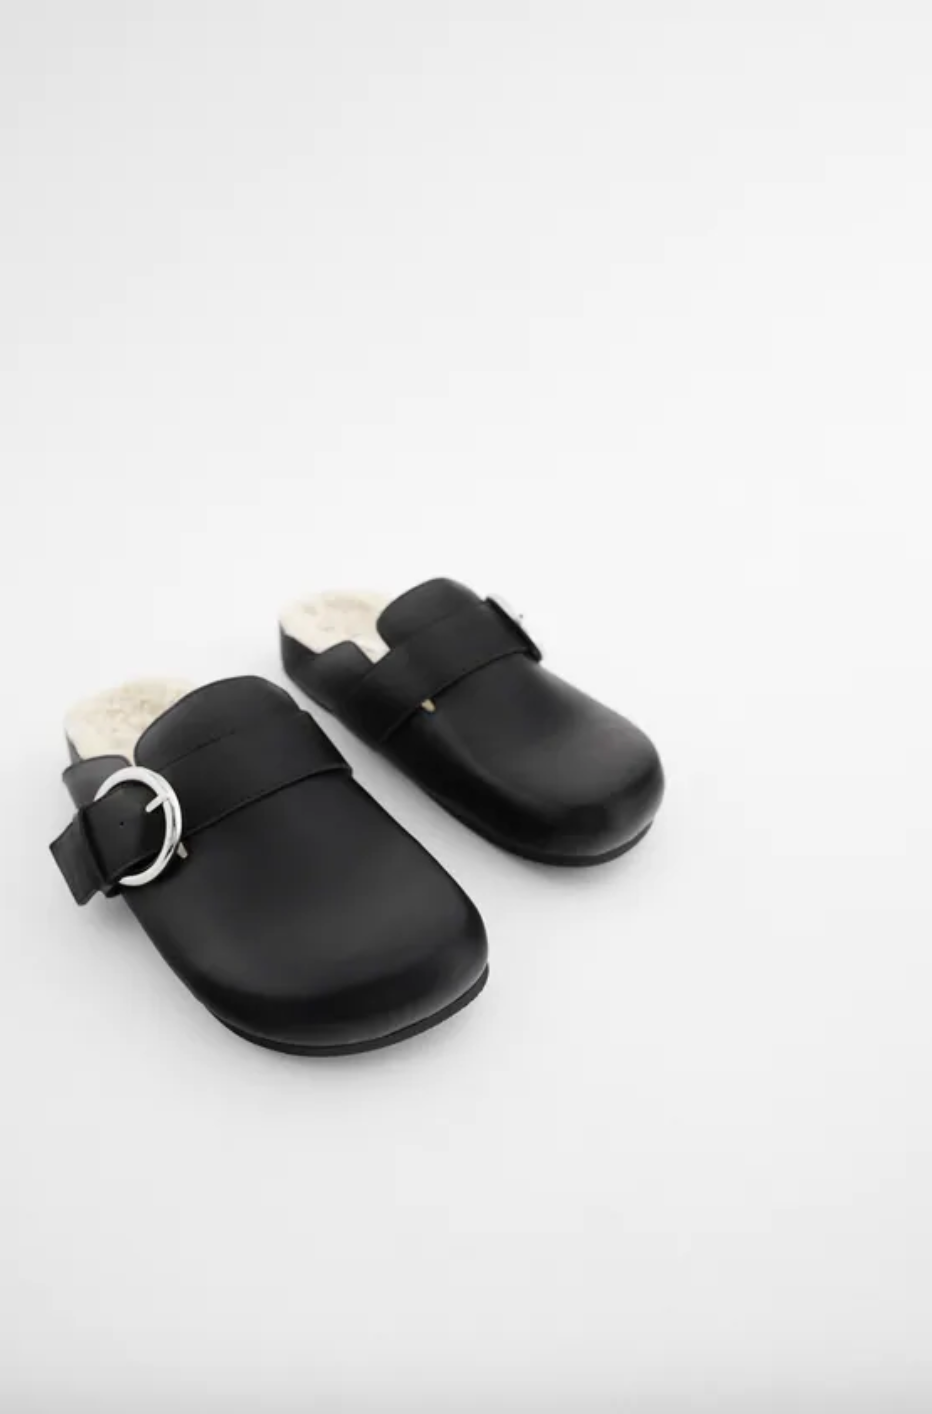 "<br><br><strong>Zara</strong> FAUX FUR LINED BUCKLE CLOGS TRF, $, available at <a href=""https://go.skimresources.com/?id=30283X879131&url=https%3A%2F%2Fwww.zara.com%2Fus%2Fen%2Ffaux-fur-lined-buckle-clogs-trf-p13538610.html%3Fv1%3D57840994"" rel=""nofollow noopener"" target=""_blank"" data-ylk=""slk:Zara"" class=""link rapid-noclick-resp"">Zara</a>"